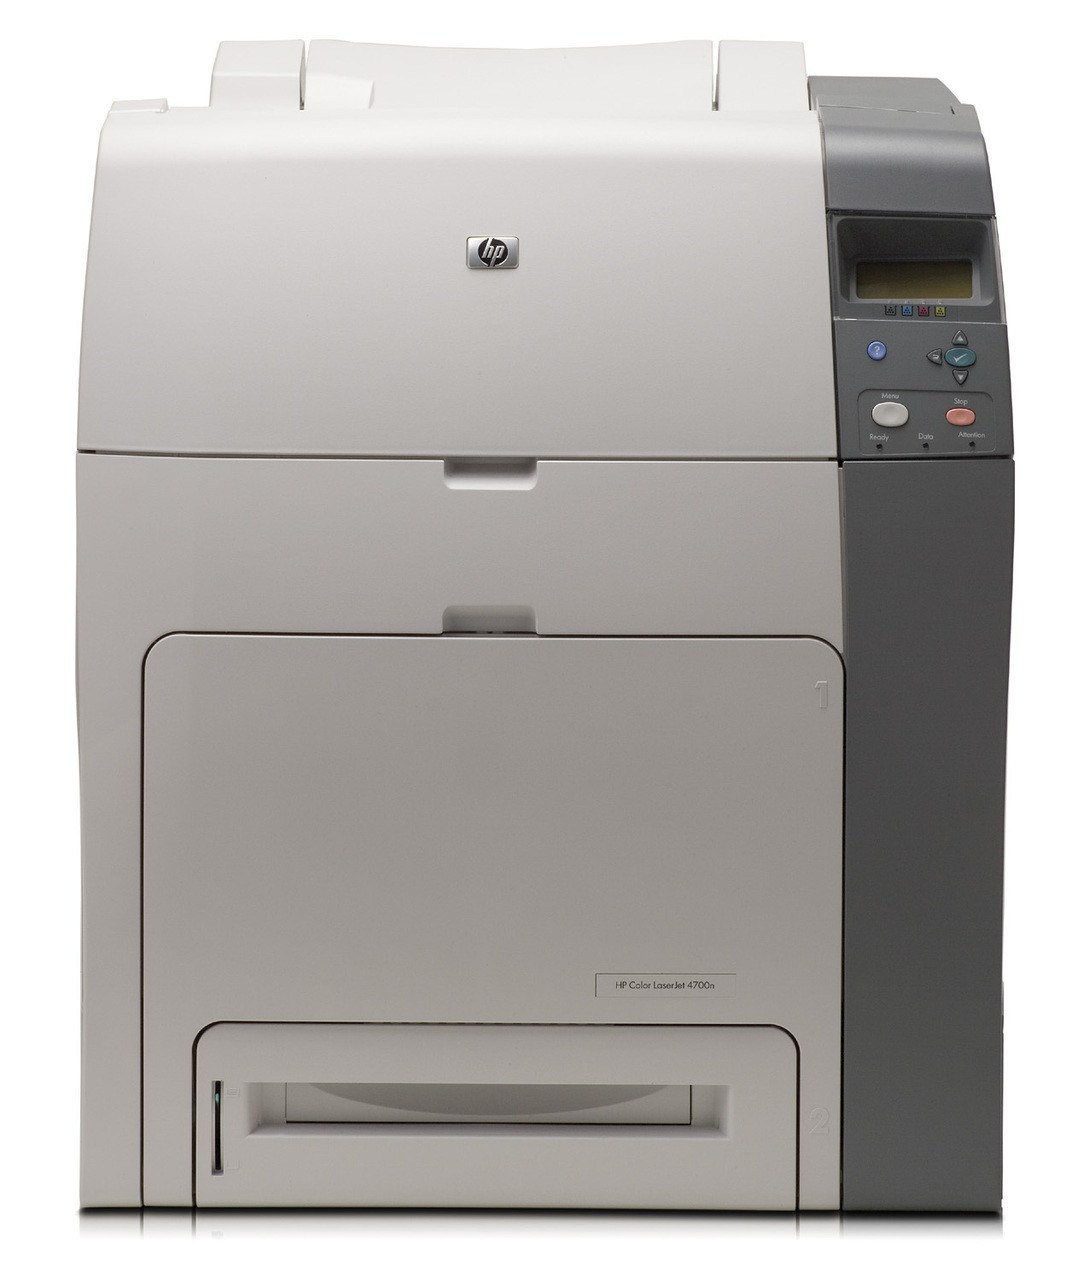 HP Color LaserJet 4700tn - Q7494A - HP Laser Printer for sale